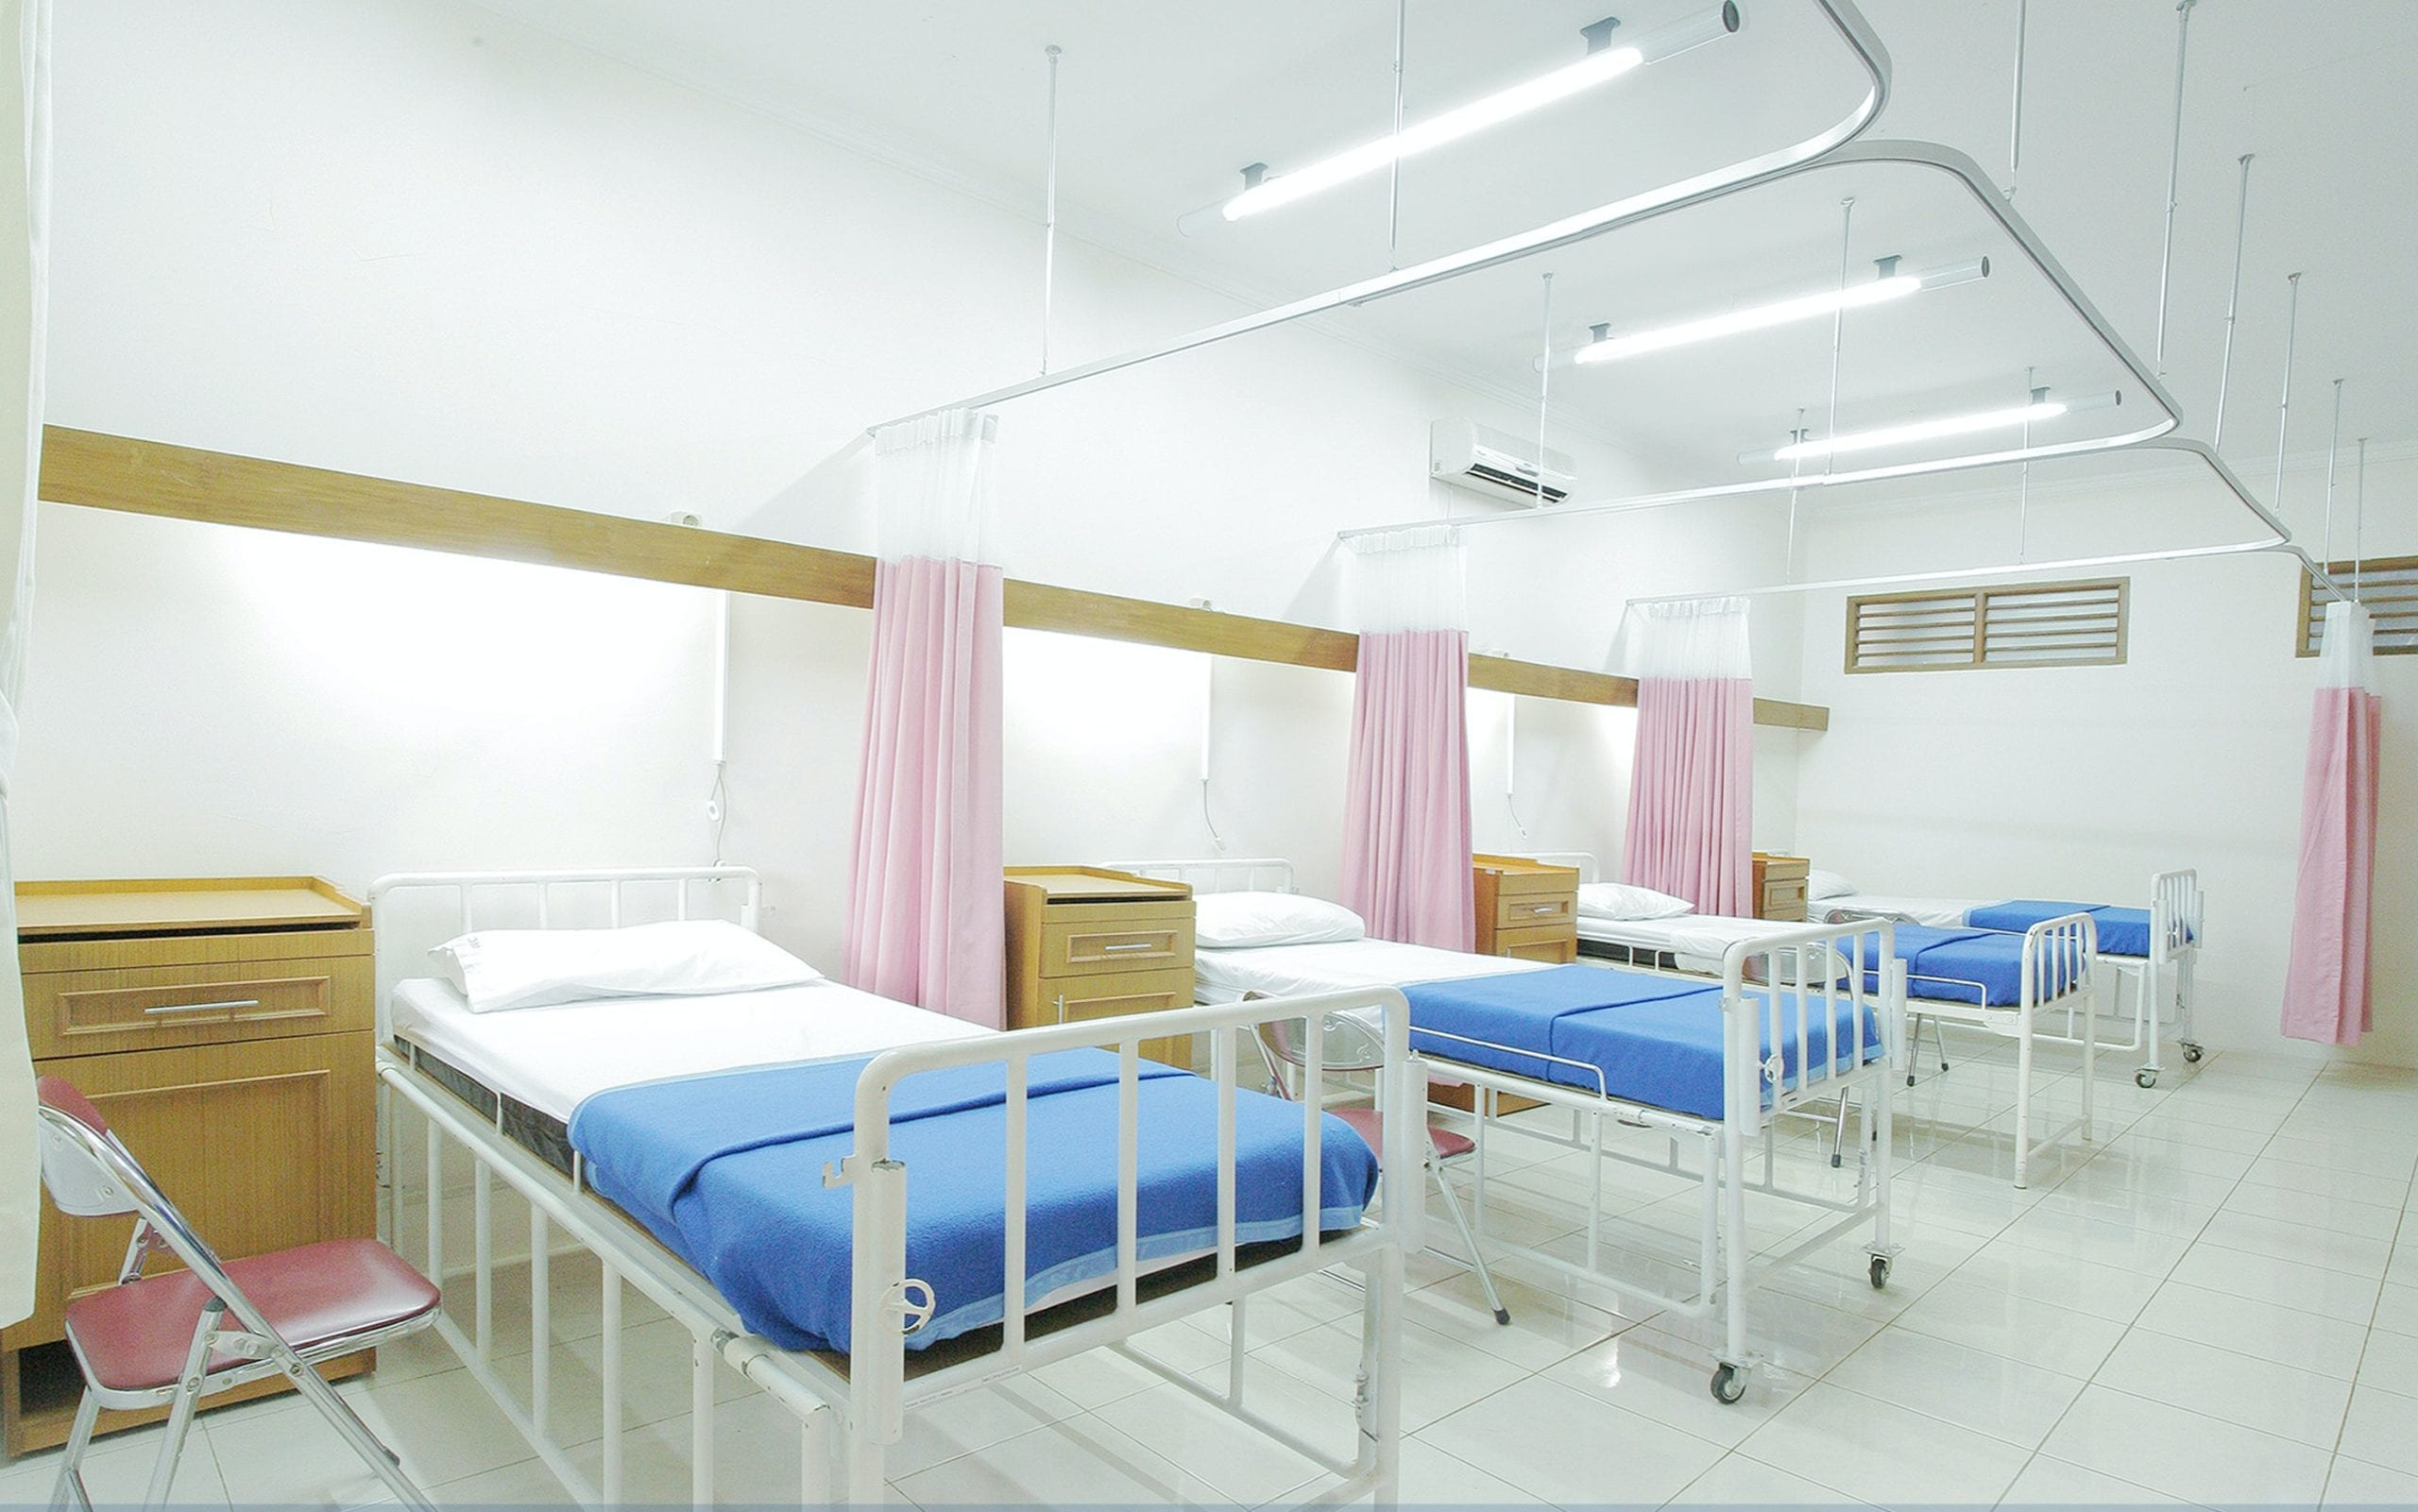 Managing Temporary Hospital Sites During COVID-19 Outbreak